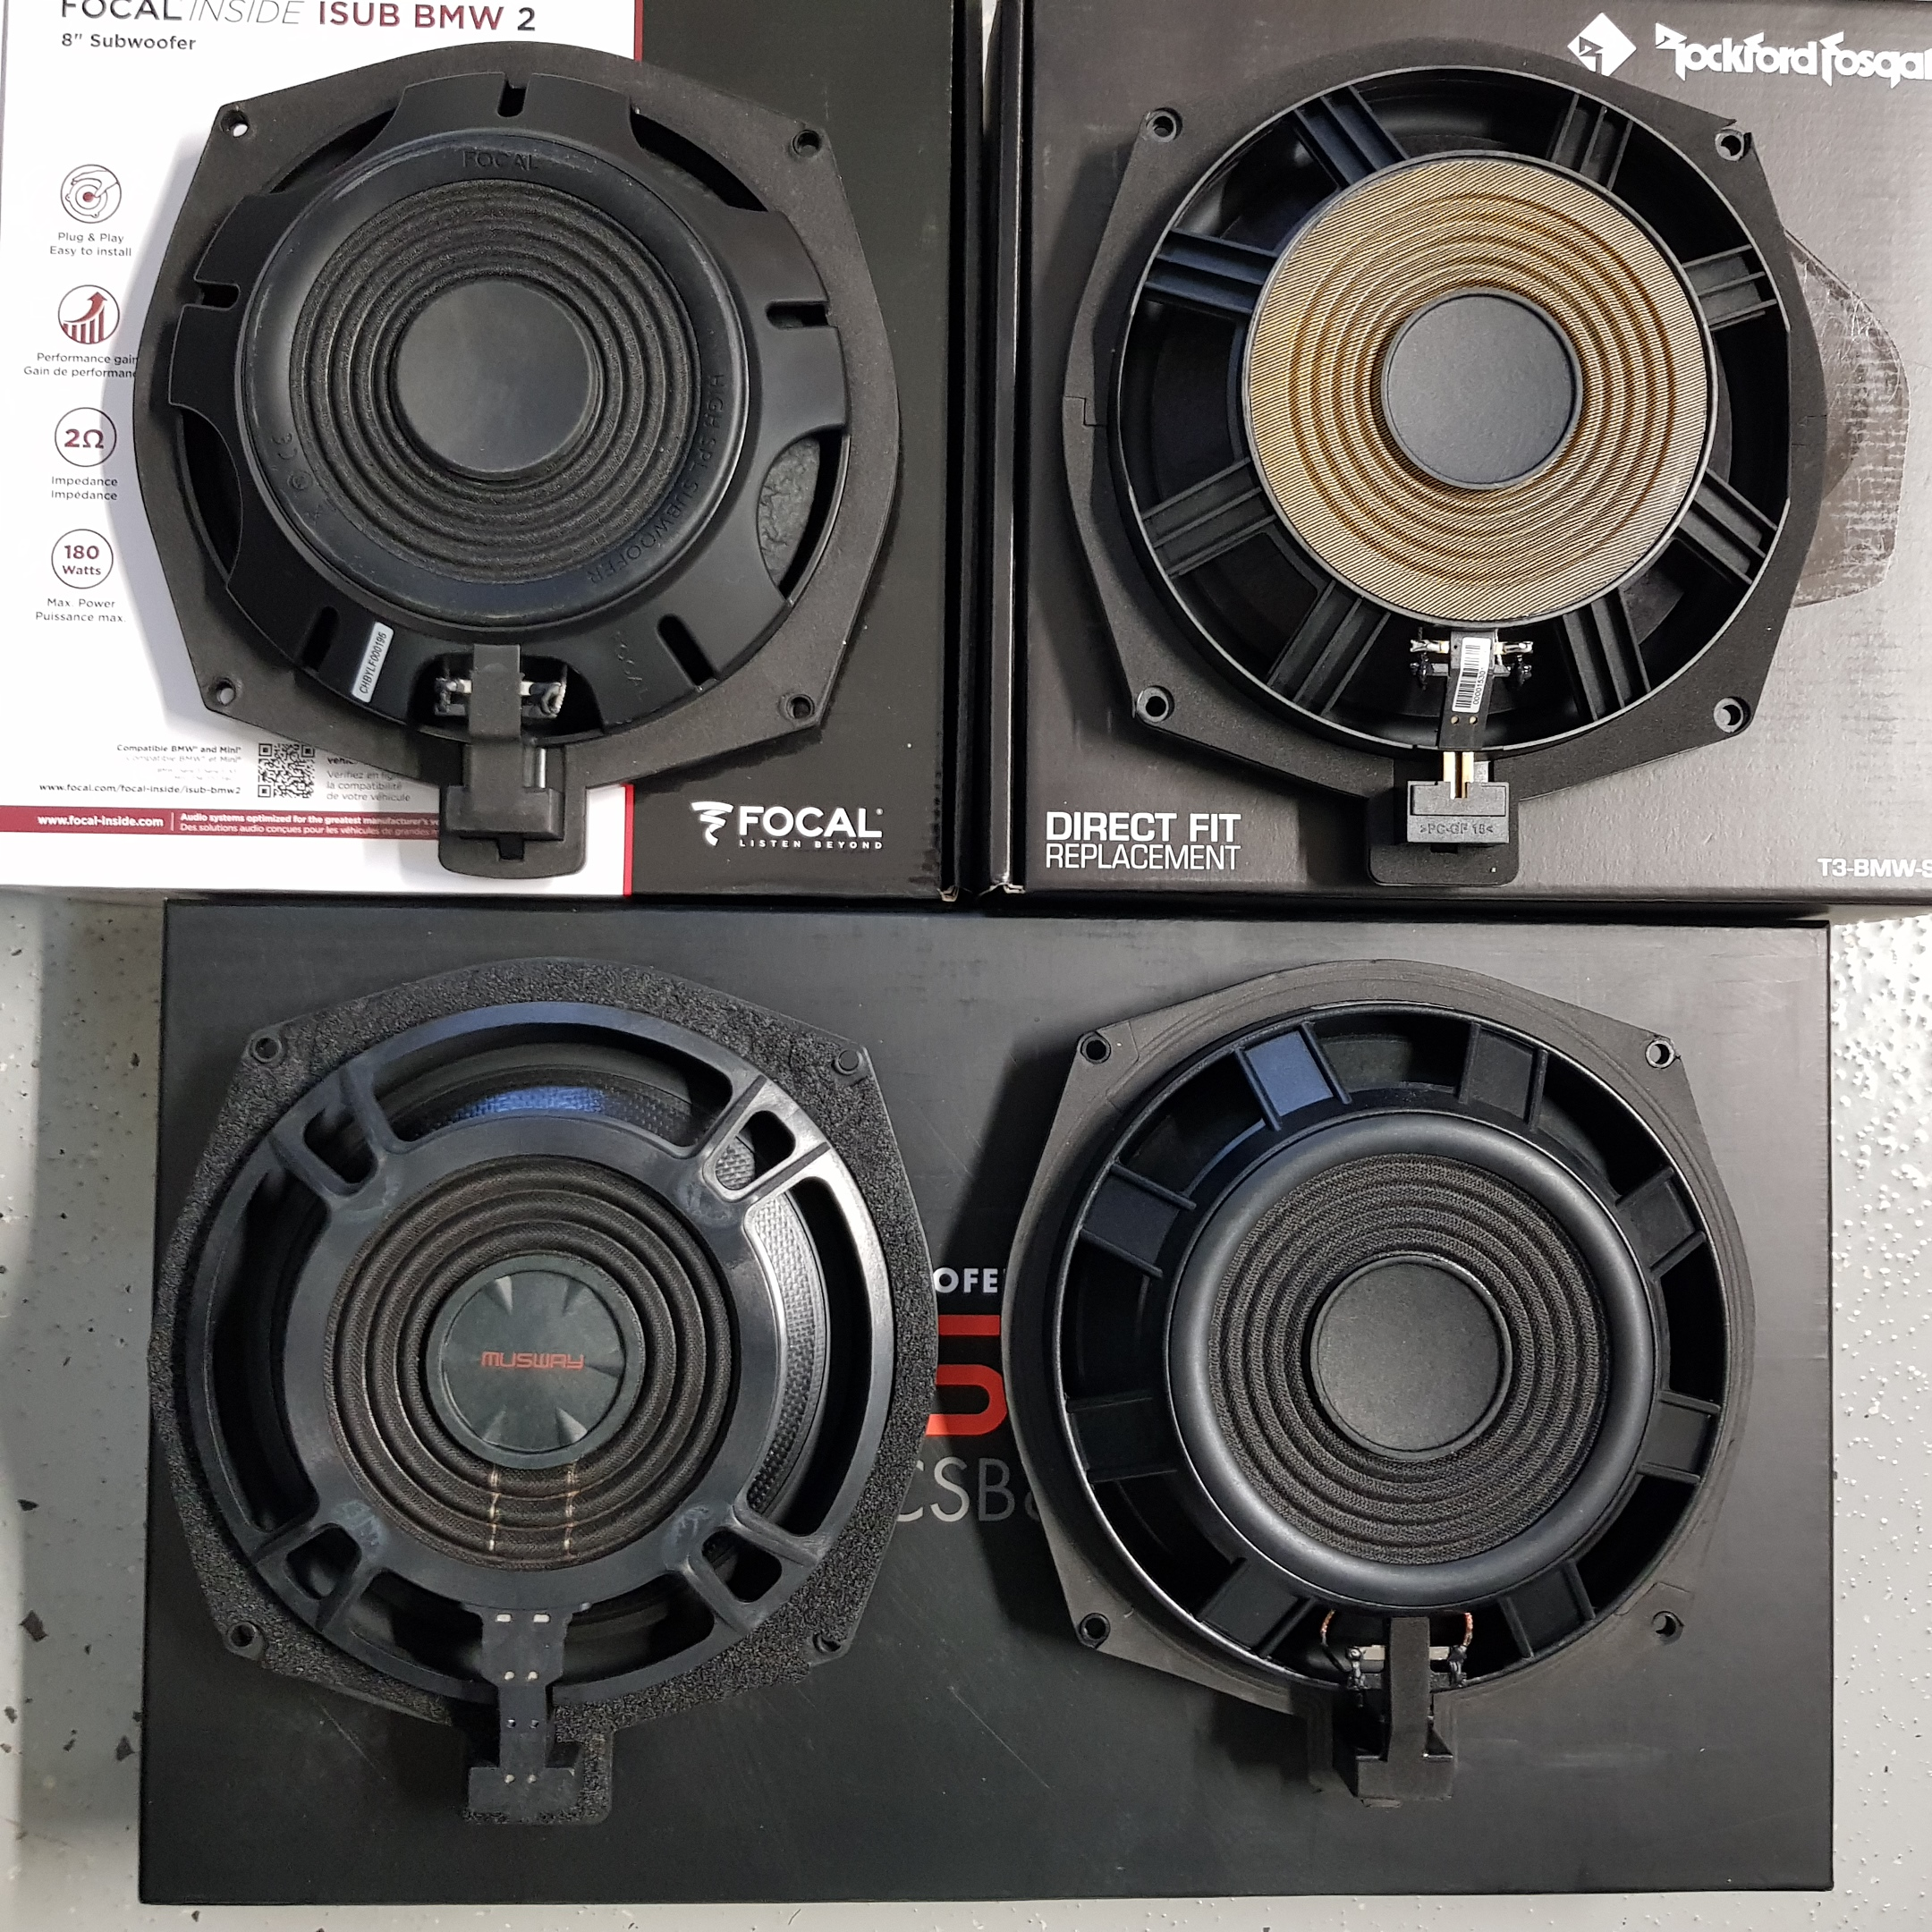 BMW subivertailu 2; Focal Isub, Musway, Audio System, Rockford Fosgate, AI-Sonic